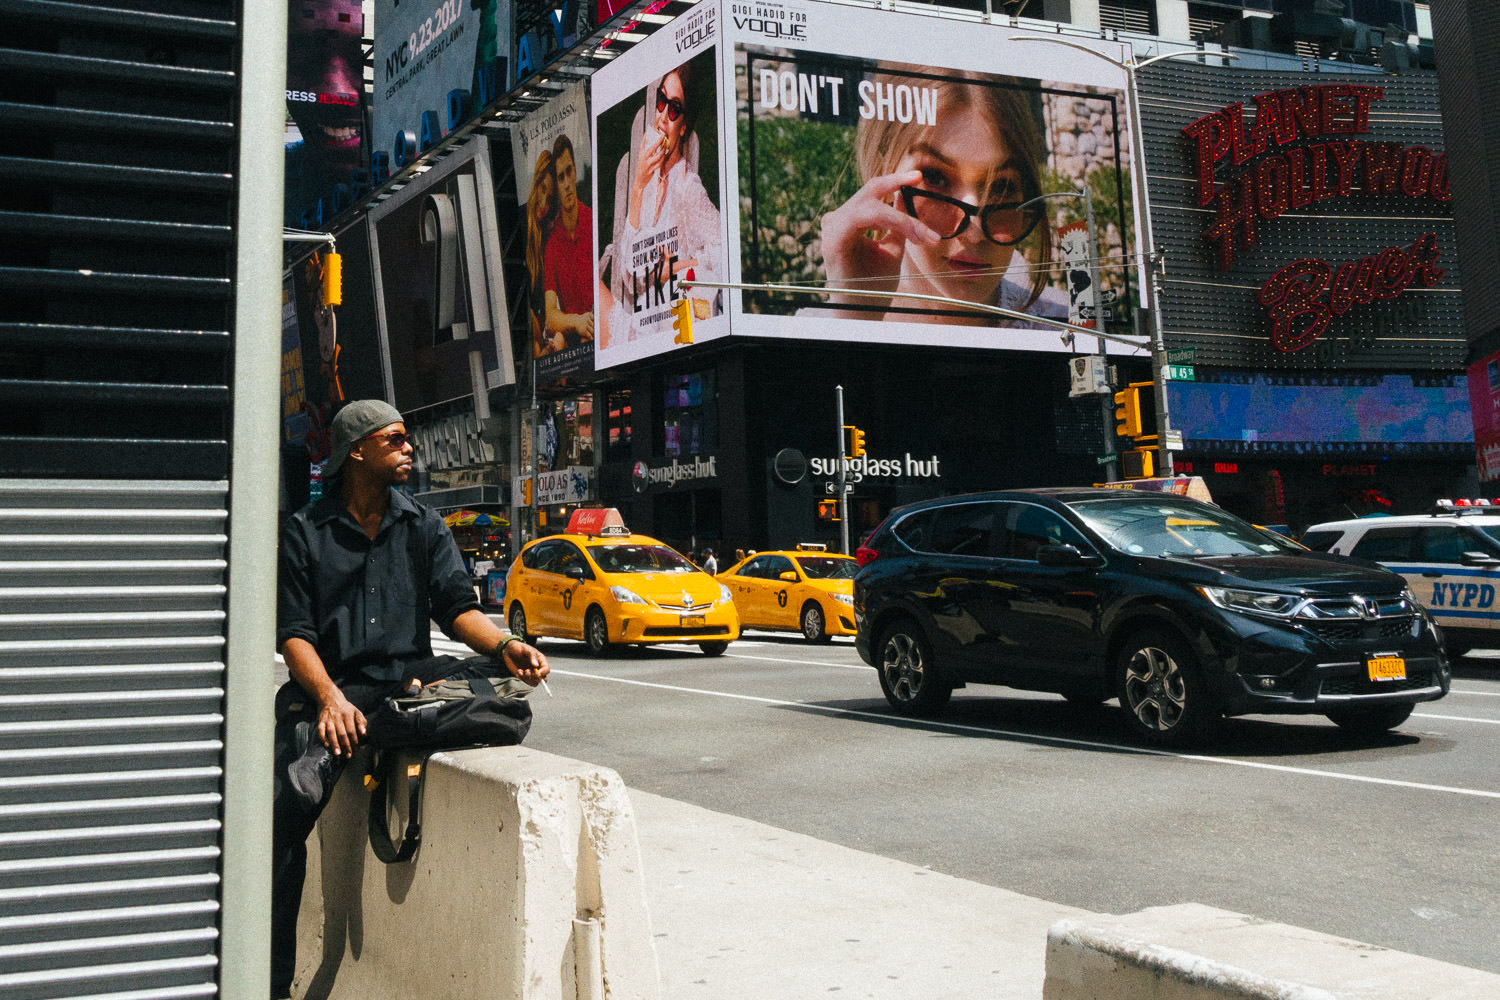 A man sits and takes in the sun in Times Square.